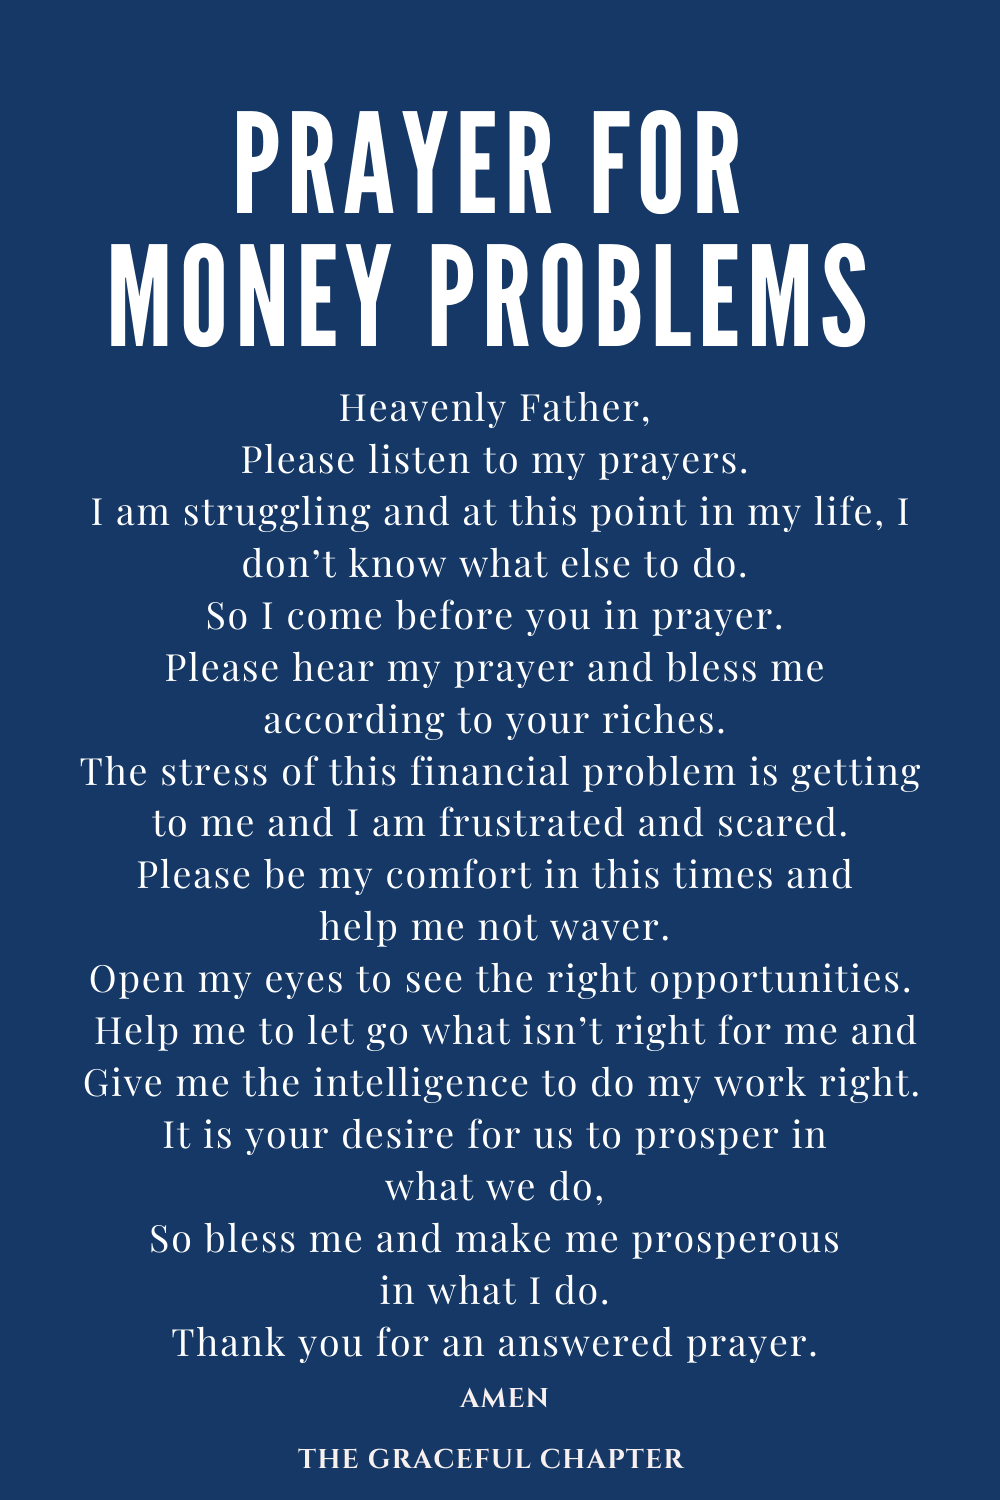 prayer for money problems